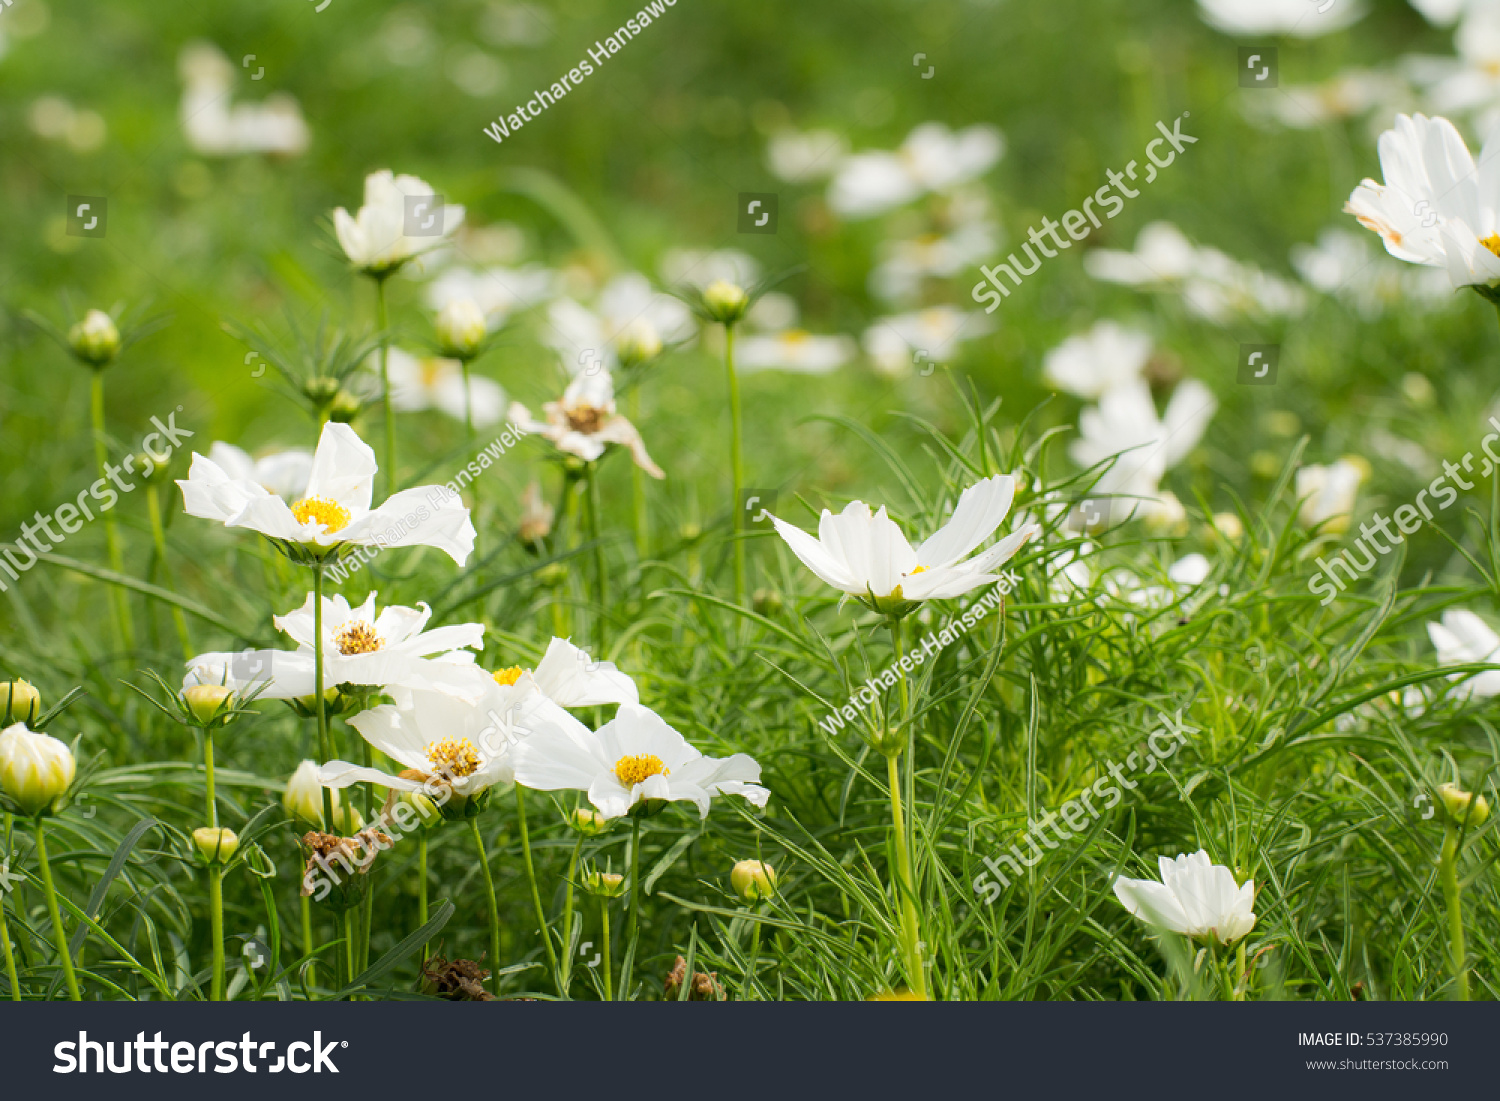 White Flowers On Green Grass Grass Stock Photo Royalty Free